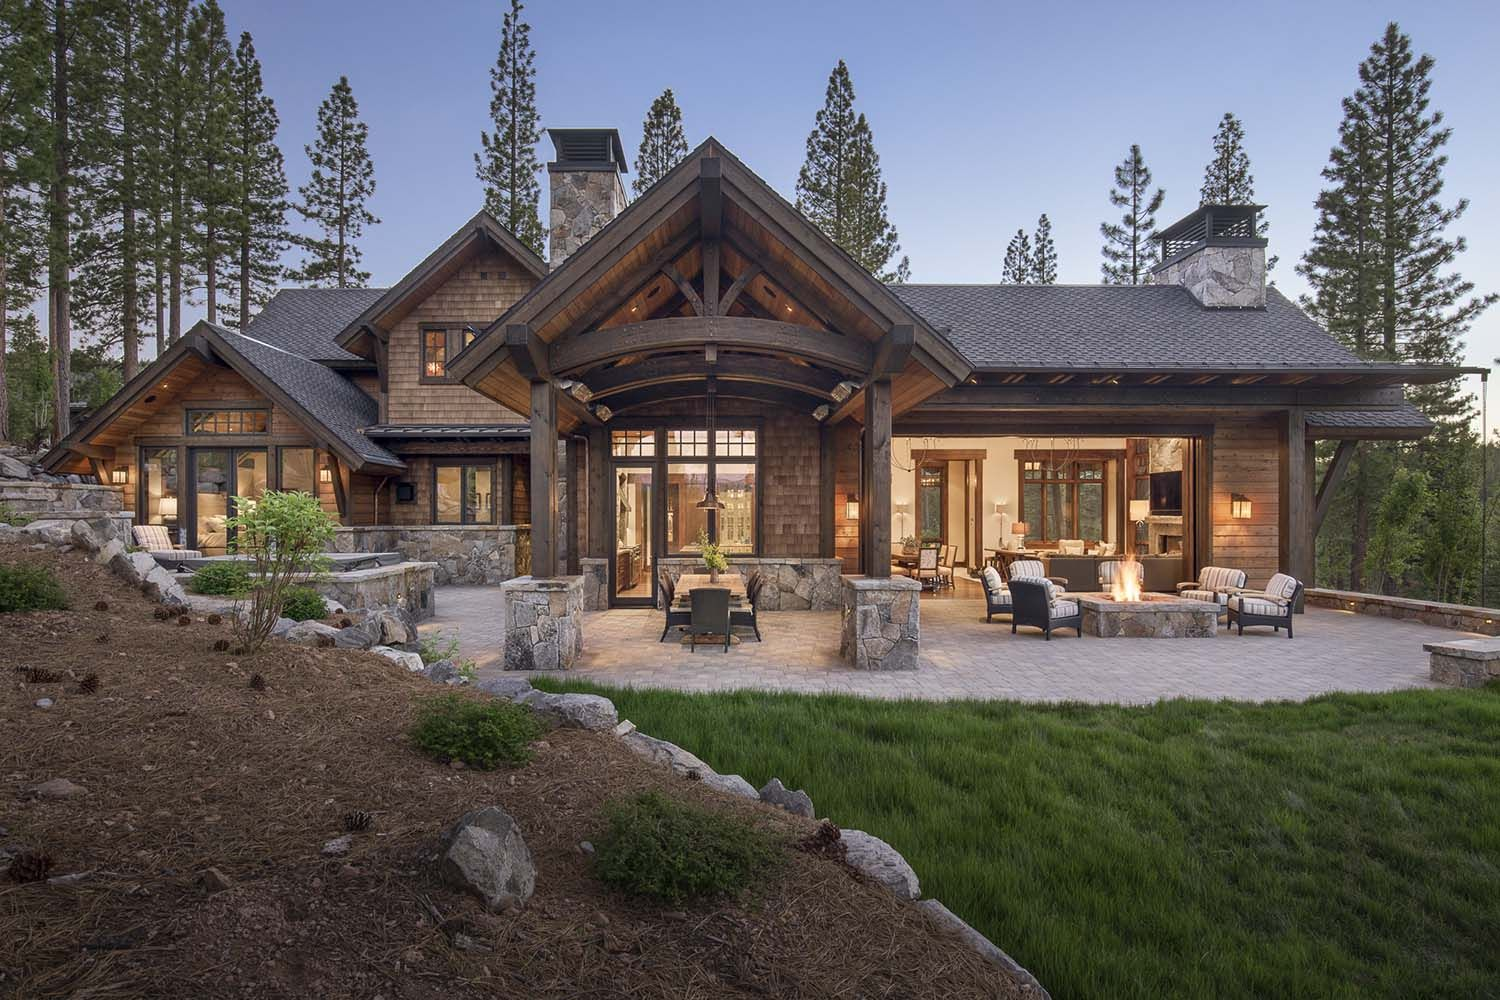 Gorgeous Rustic Mountain Retreat With Stylish Interiors In Martis Camp Rustic House Plans Mountain Home Exterior Rustic House